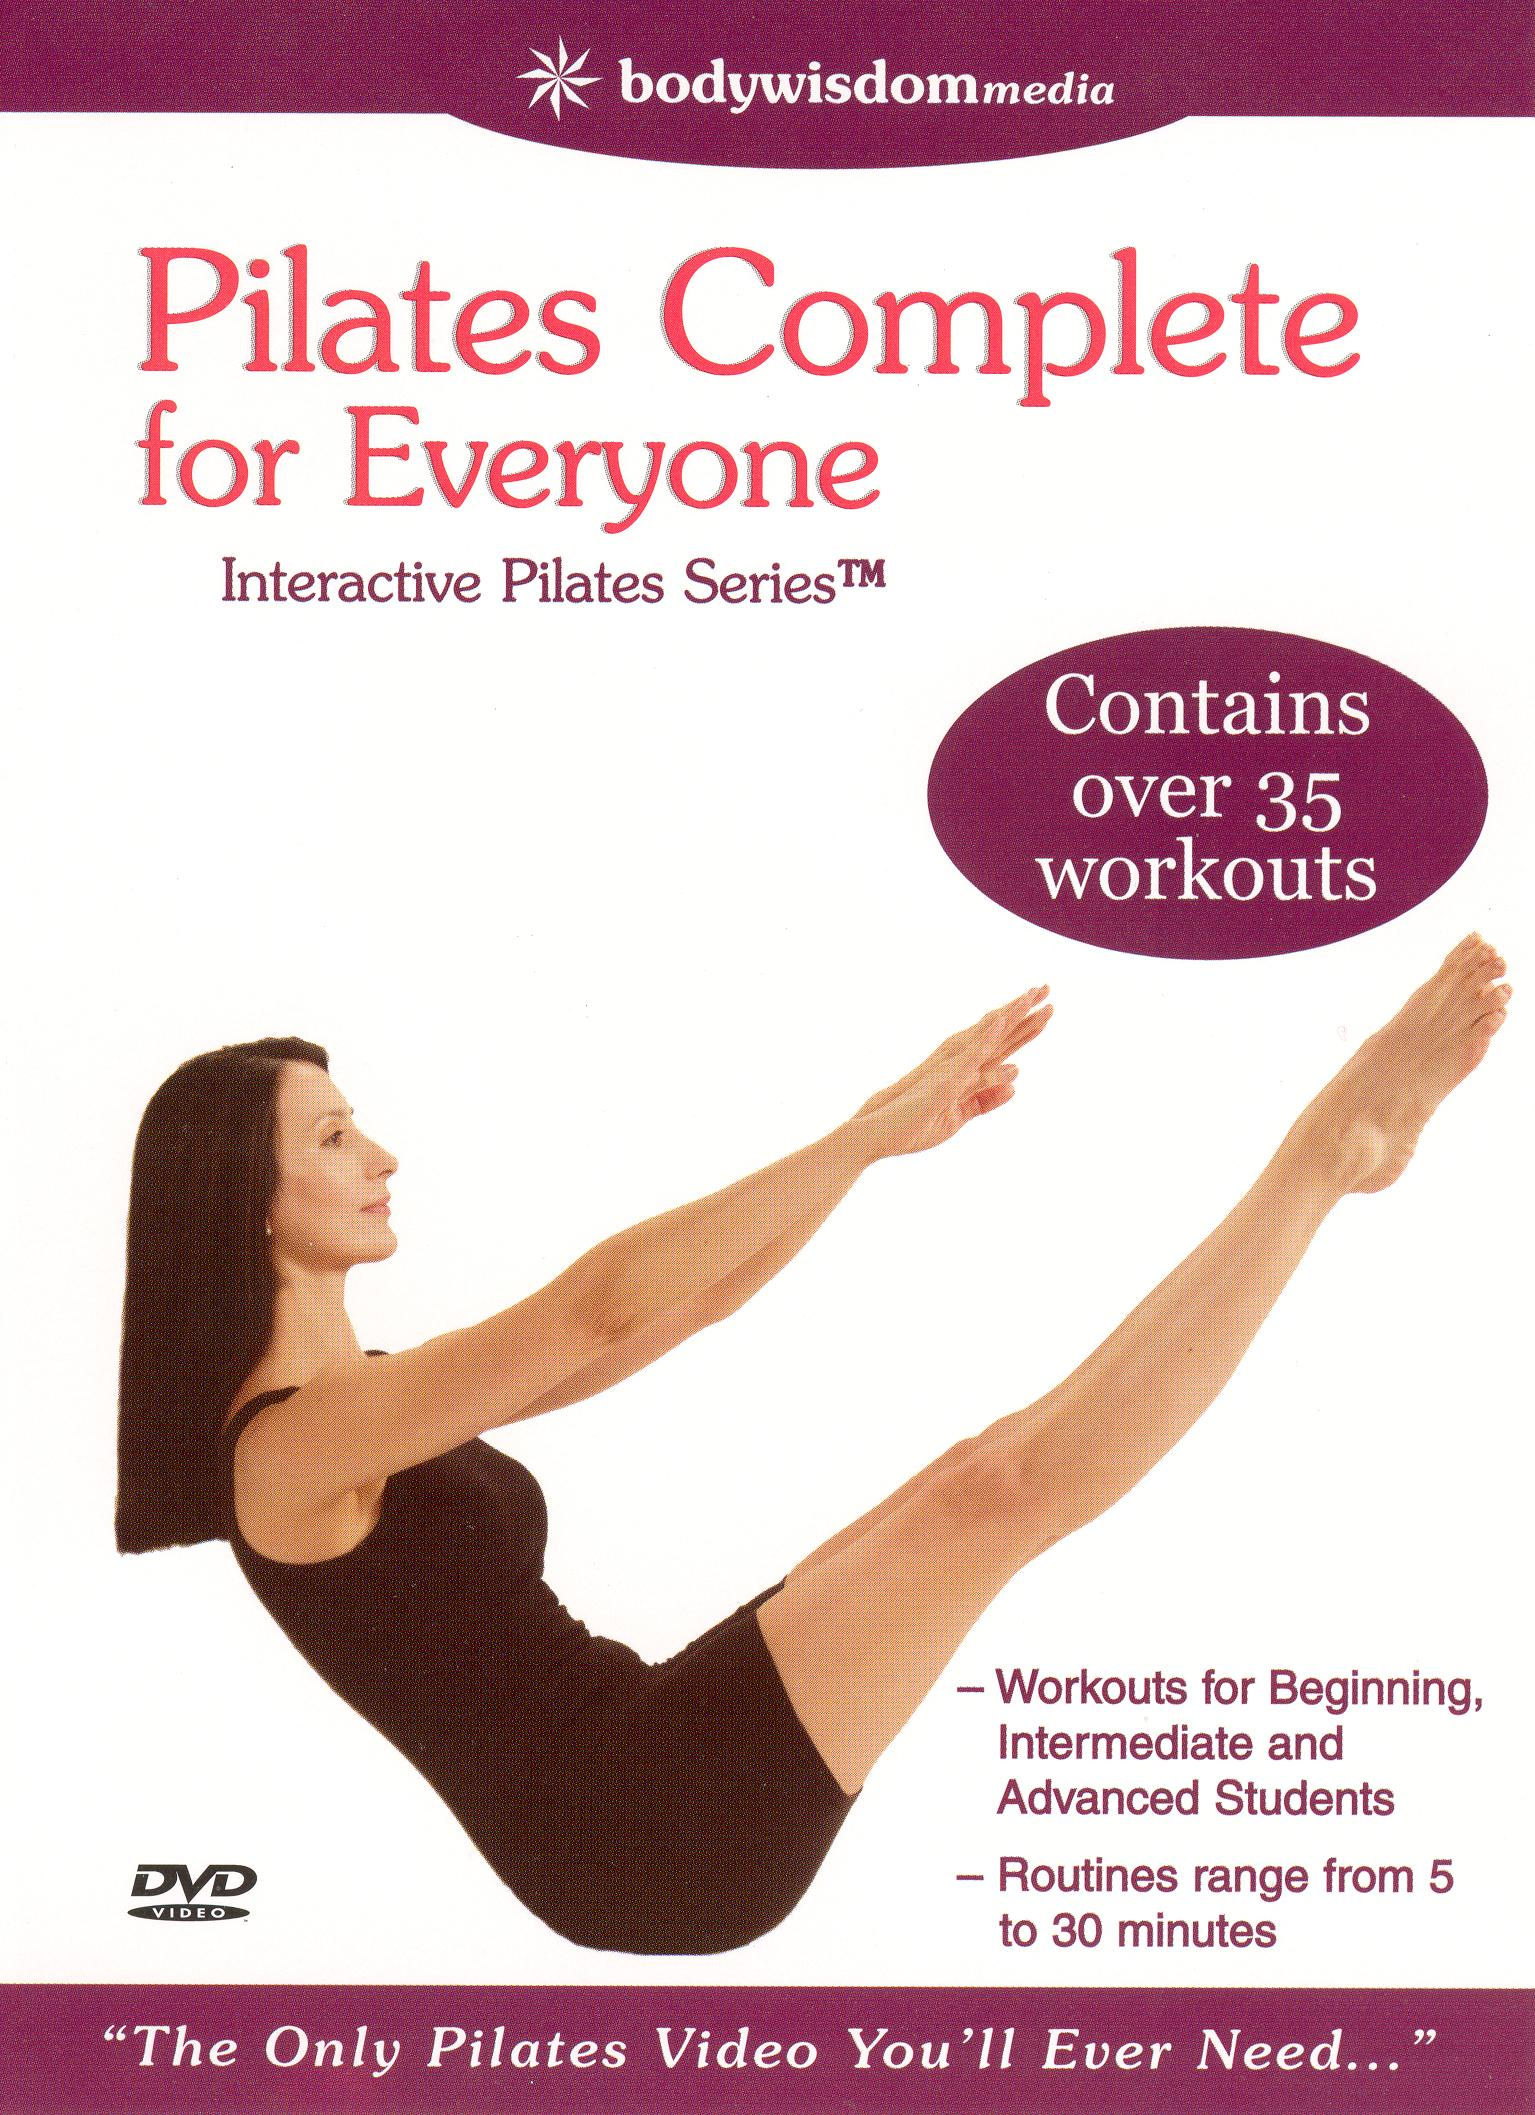 Pilates Complete for Everyone